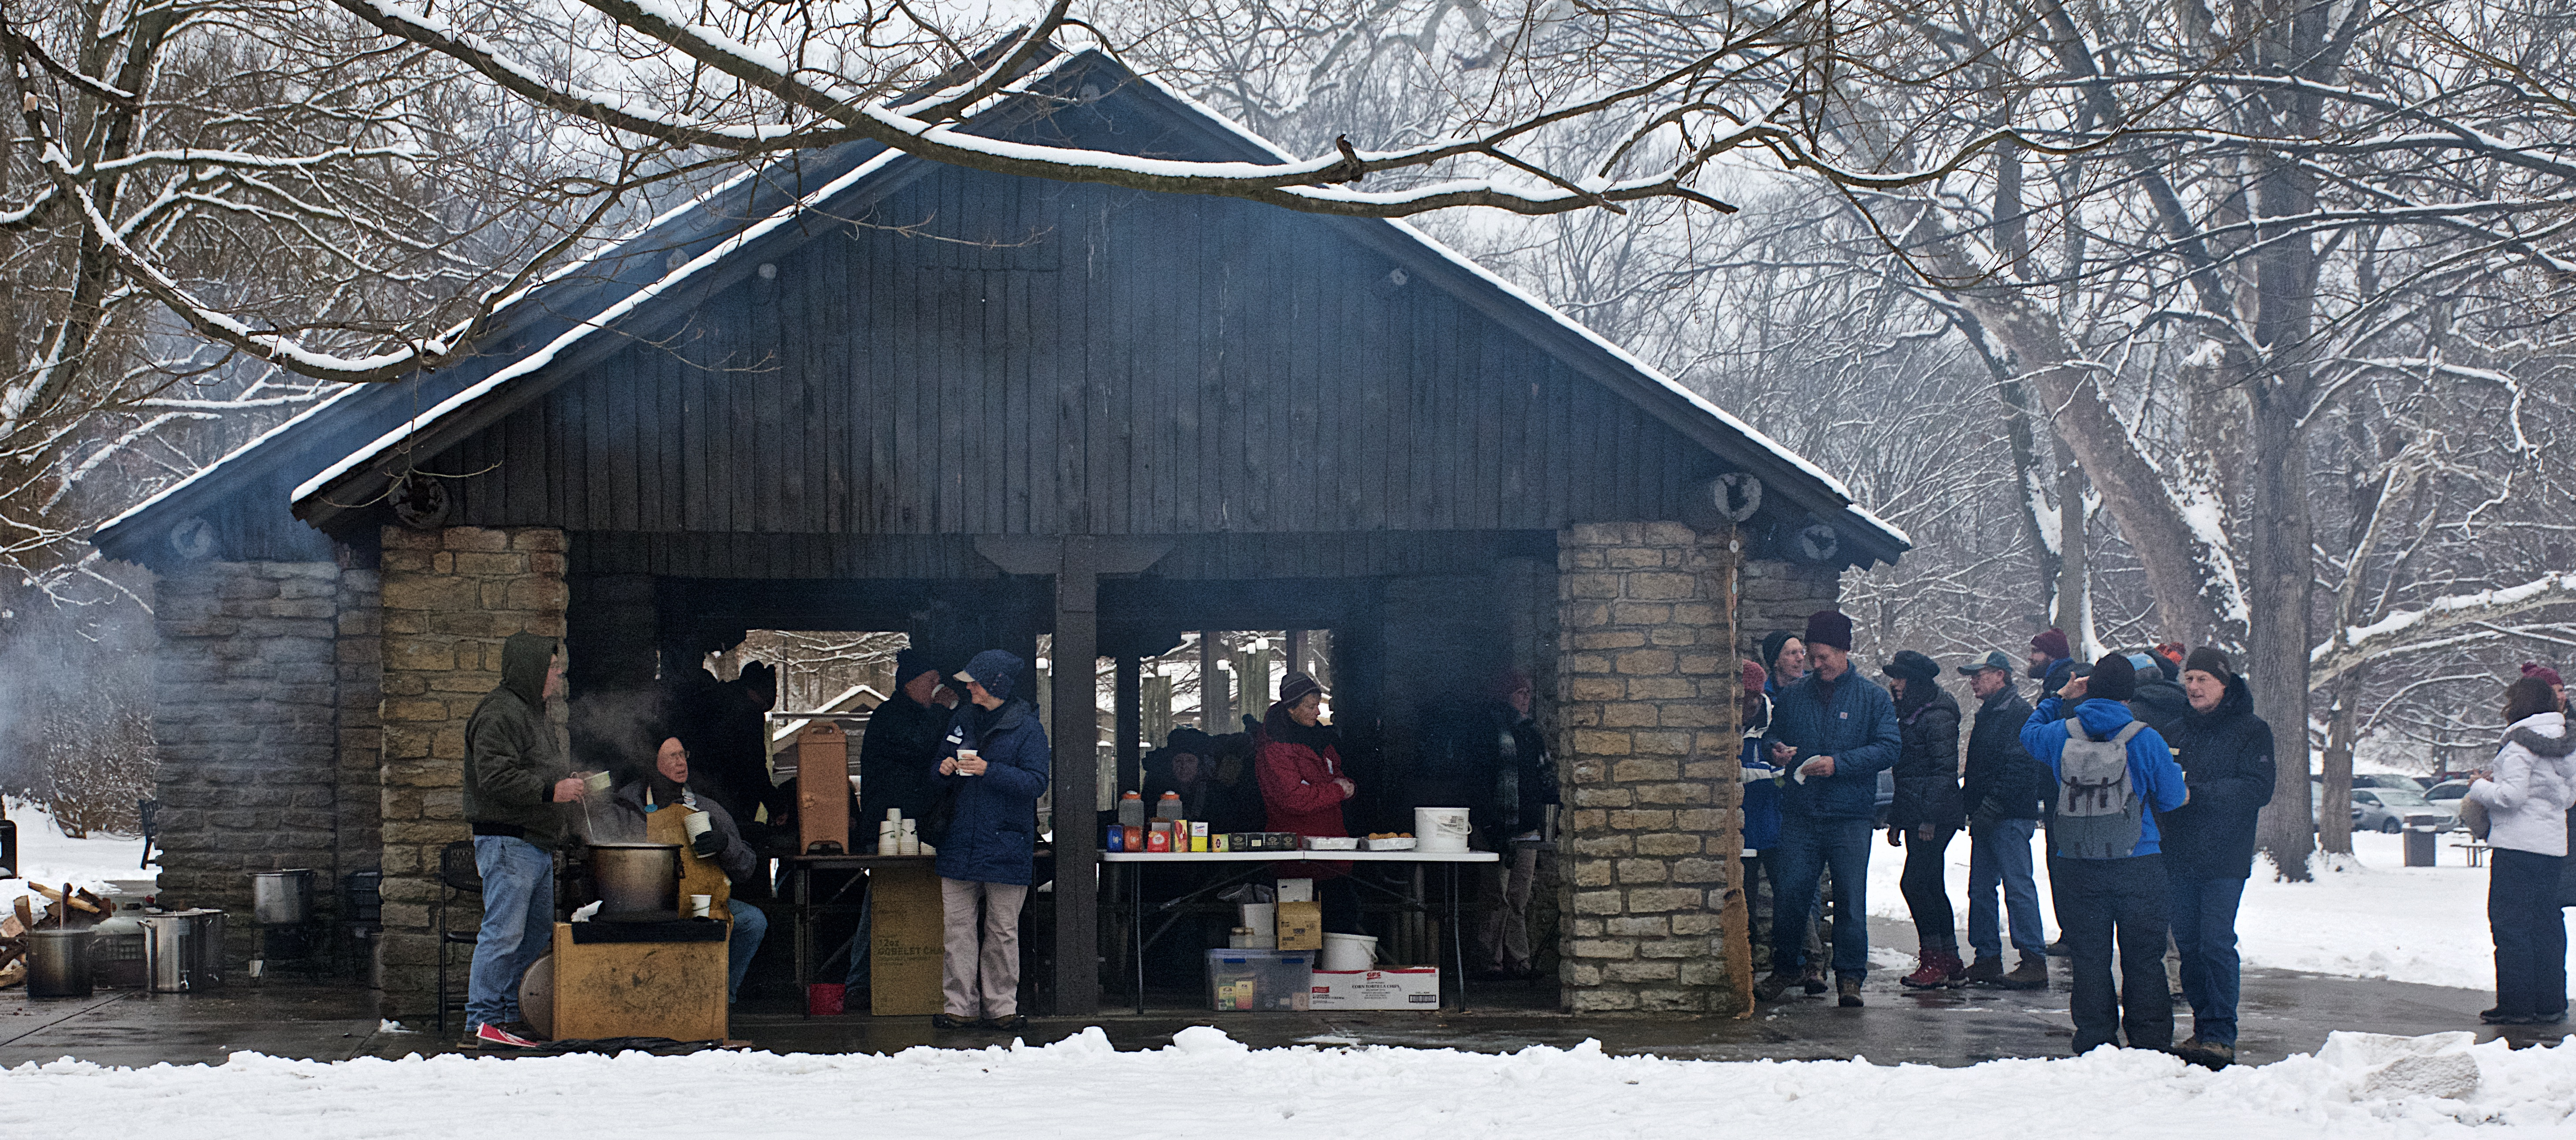 Park guests gather in a snow-covered Pavilion Grove Shelter after a long hike in January 2019.